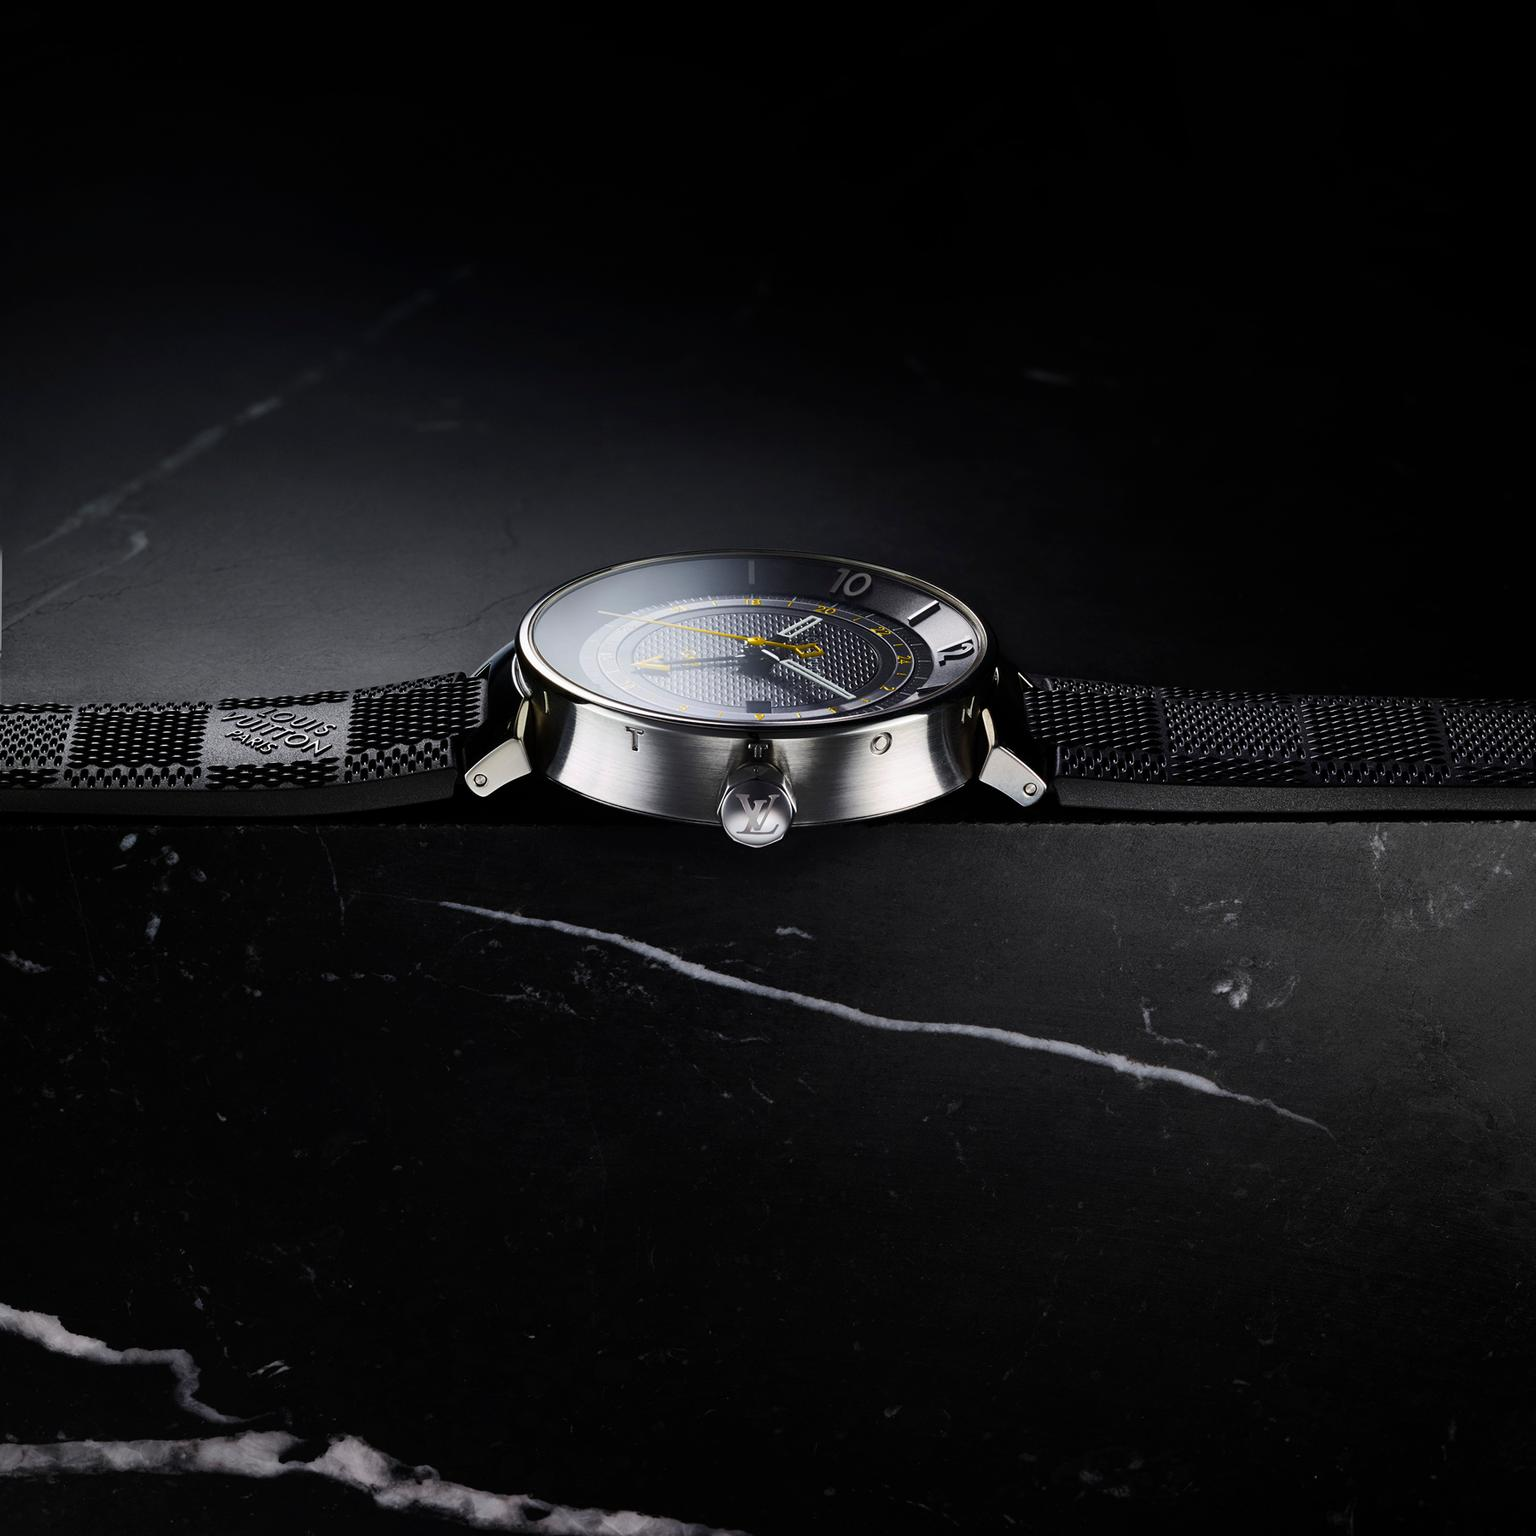 Louis Vuitton Tambour Moon GMT Black watch